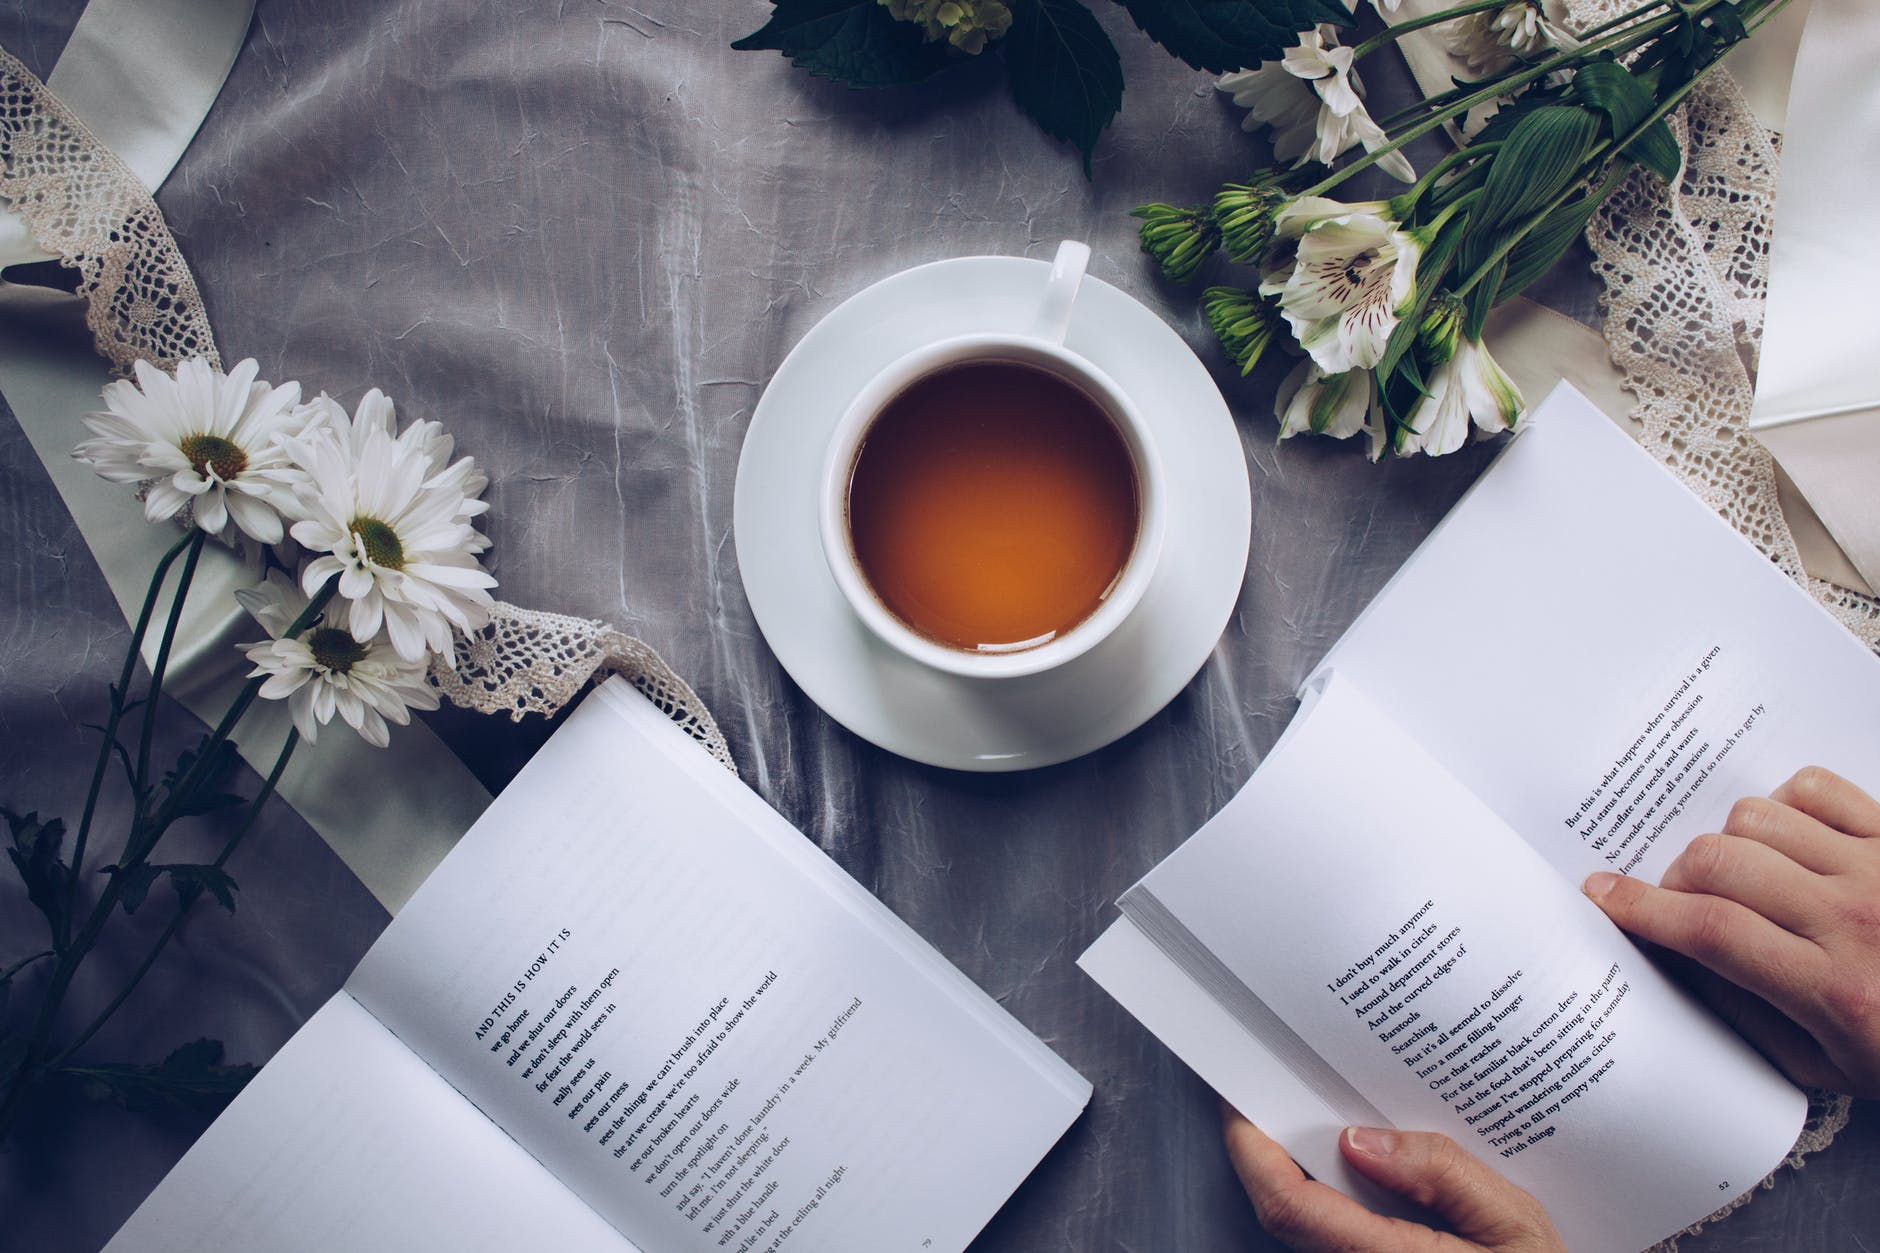 Birds eye view of a close up of a table with a cup of tea in a white mug on a white coaster in the middle. In the foreground our two books open - the book to the right has hands on it, holding it open. There is a sheer table cloth underneath and an arrangement of flowers in the top right hand and left hand corner